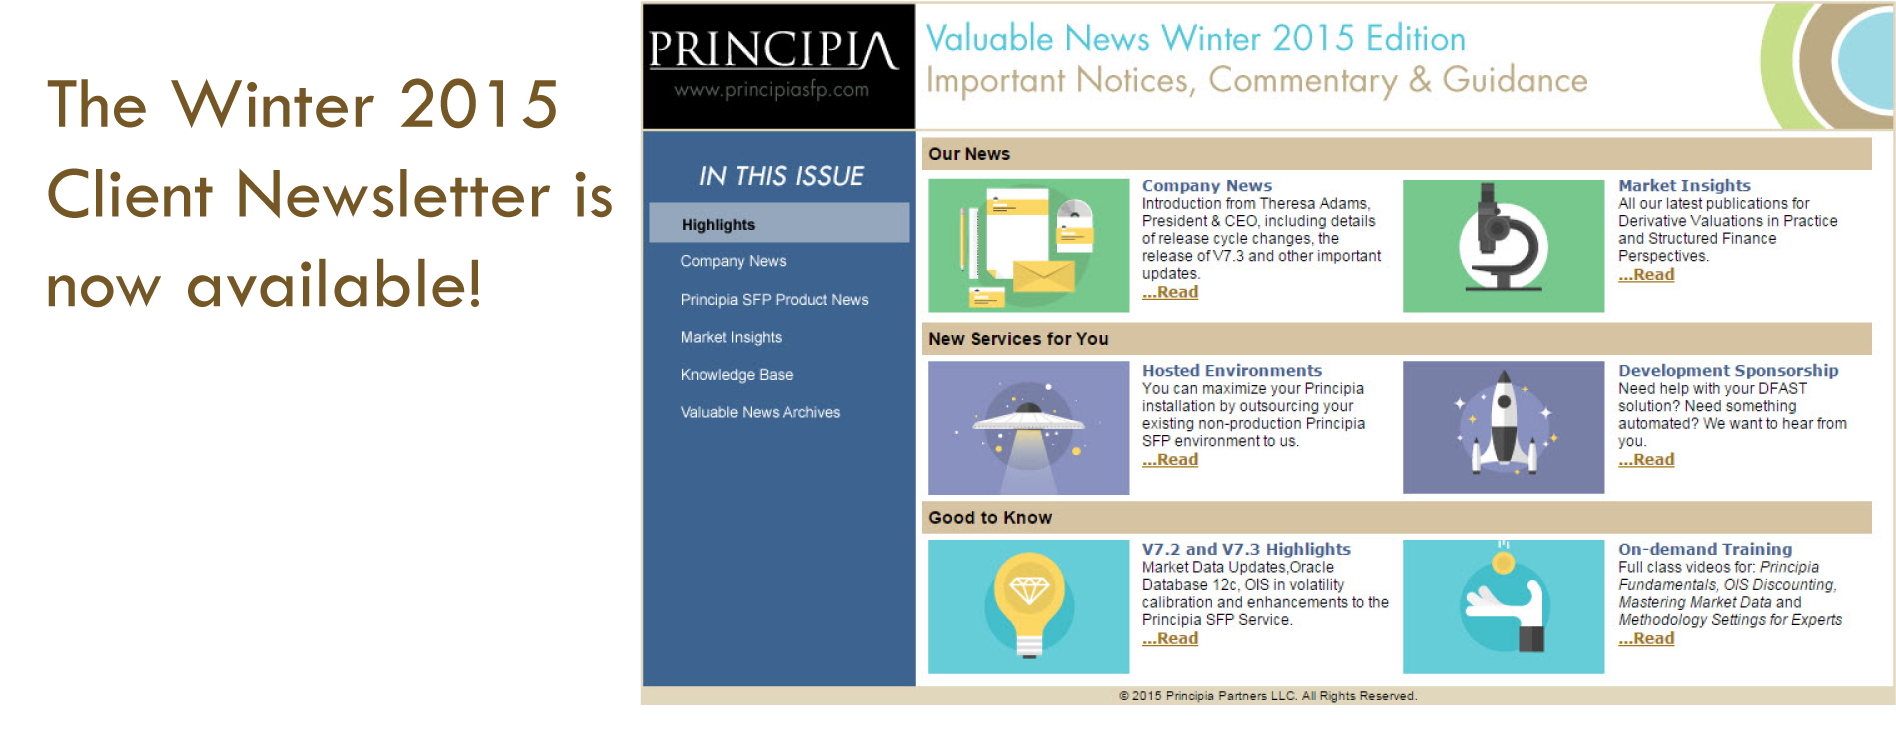 Winter 2015 Newsletter is Now Available!